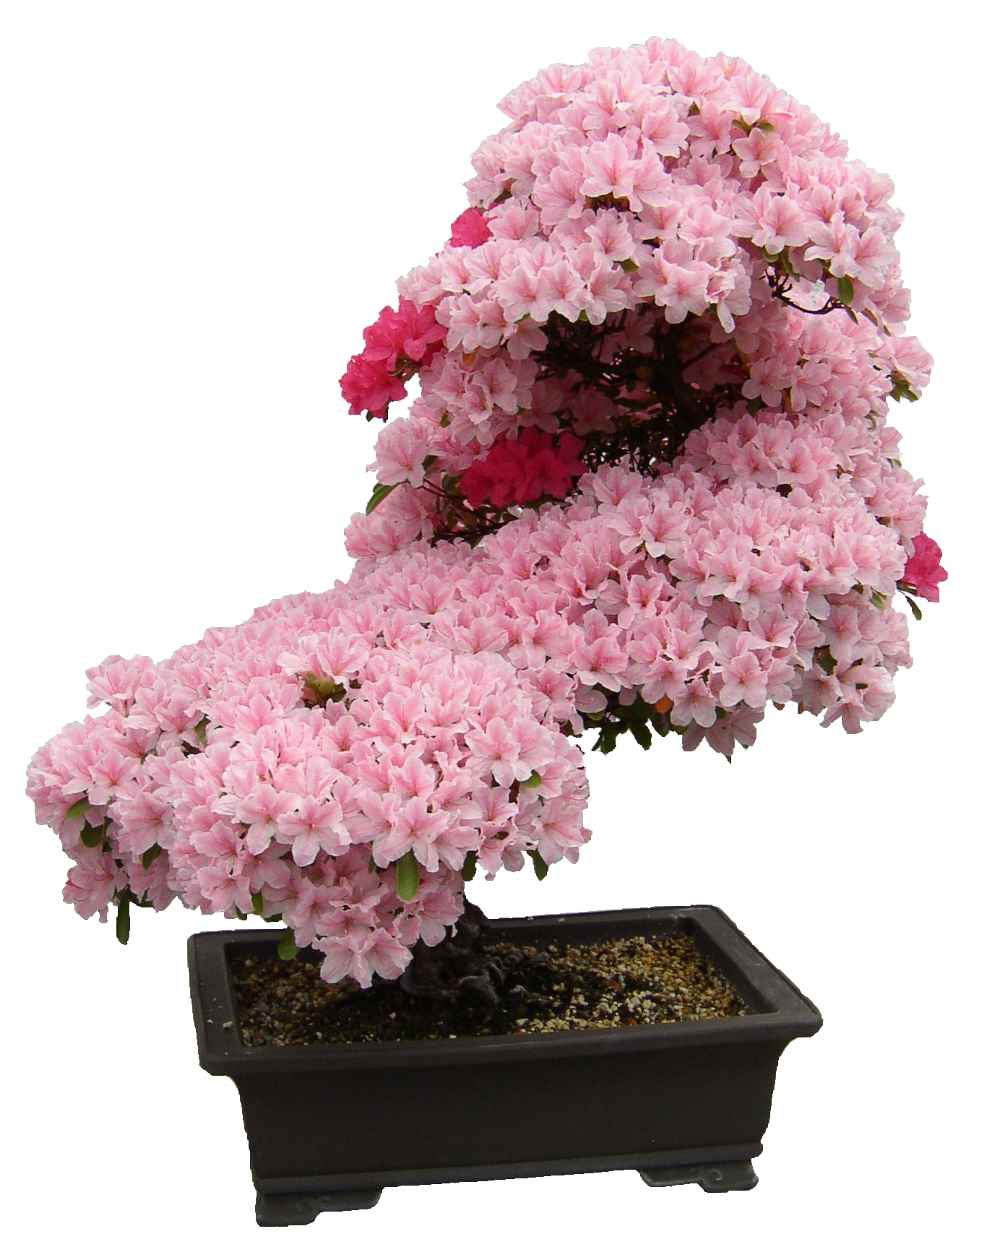 Azalea Japonica Planting Pruning Soil Care And Tips On Bonsai Making